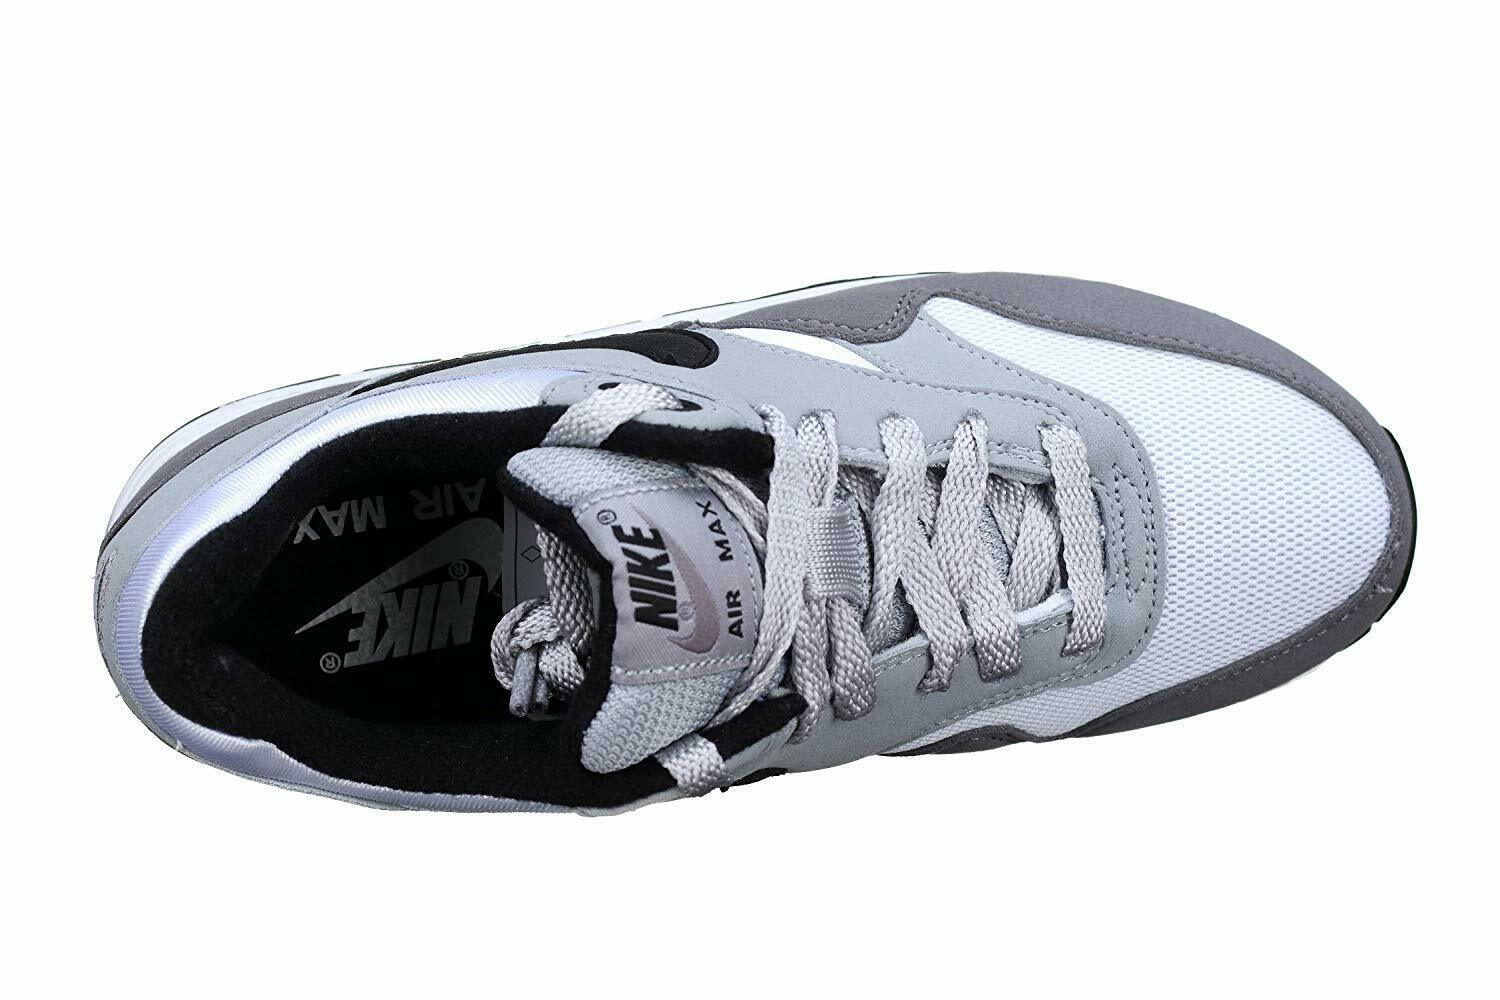 Nike Air Max 1 (GS) White Black Wolf Grey Gunsmoke Kids Running Shoes 807602 108 image 4